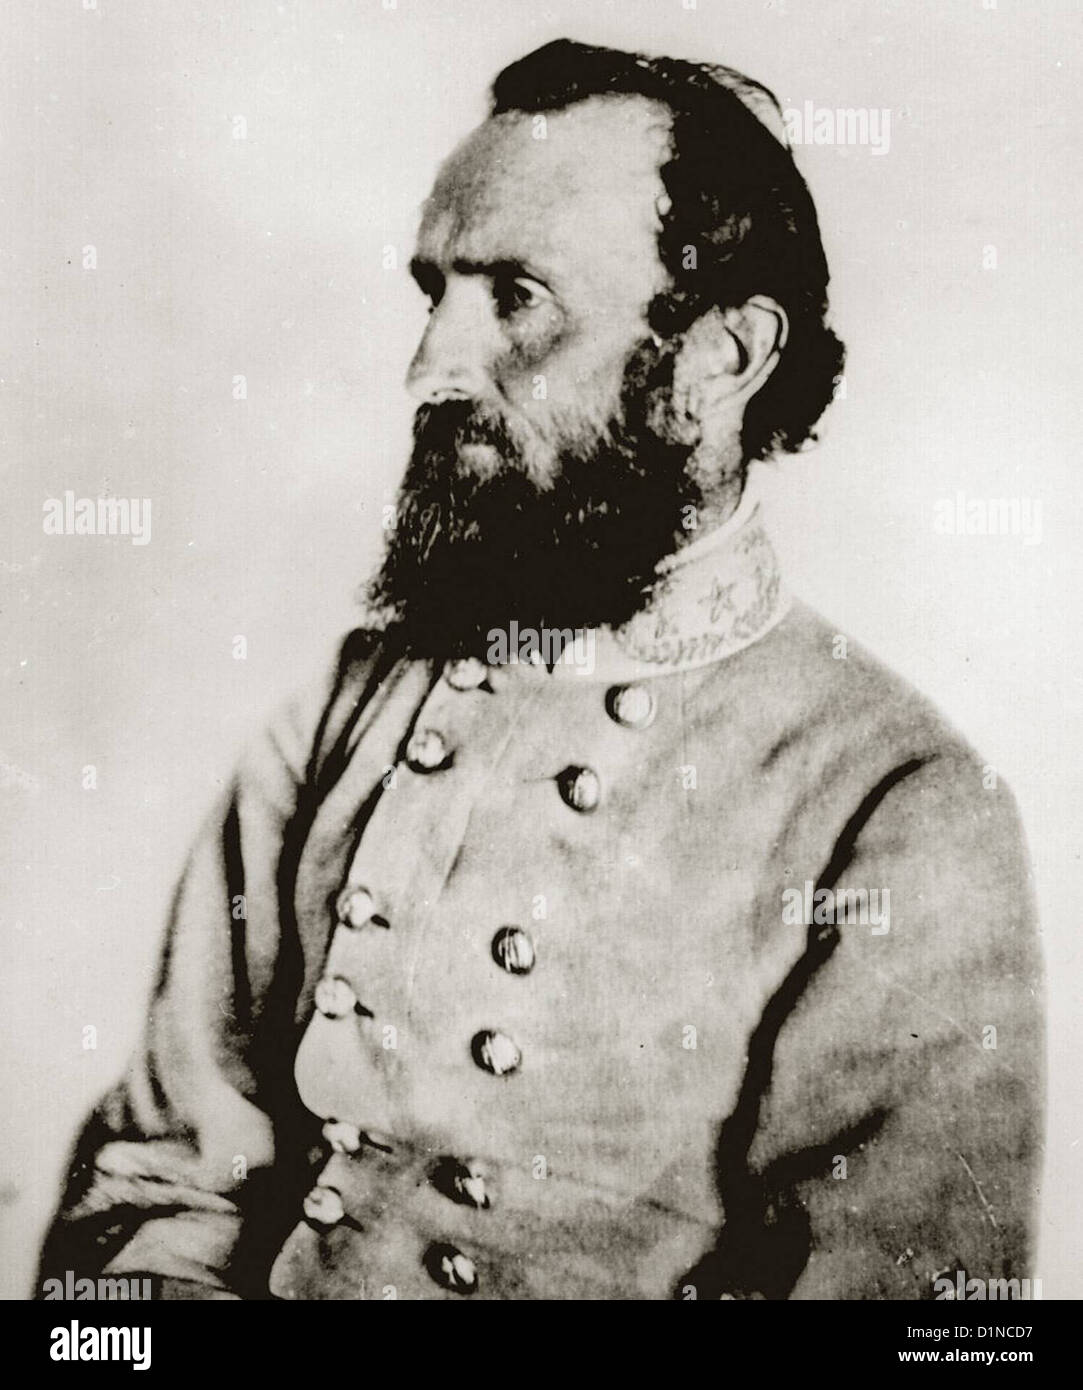 Antietam National Battlefield Maryland Confederate Soldiers  Maj. Gen. Thomas J. 'Stonewall' Jackson - Stock Image